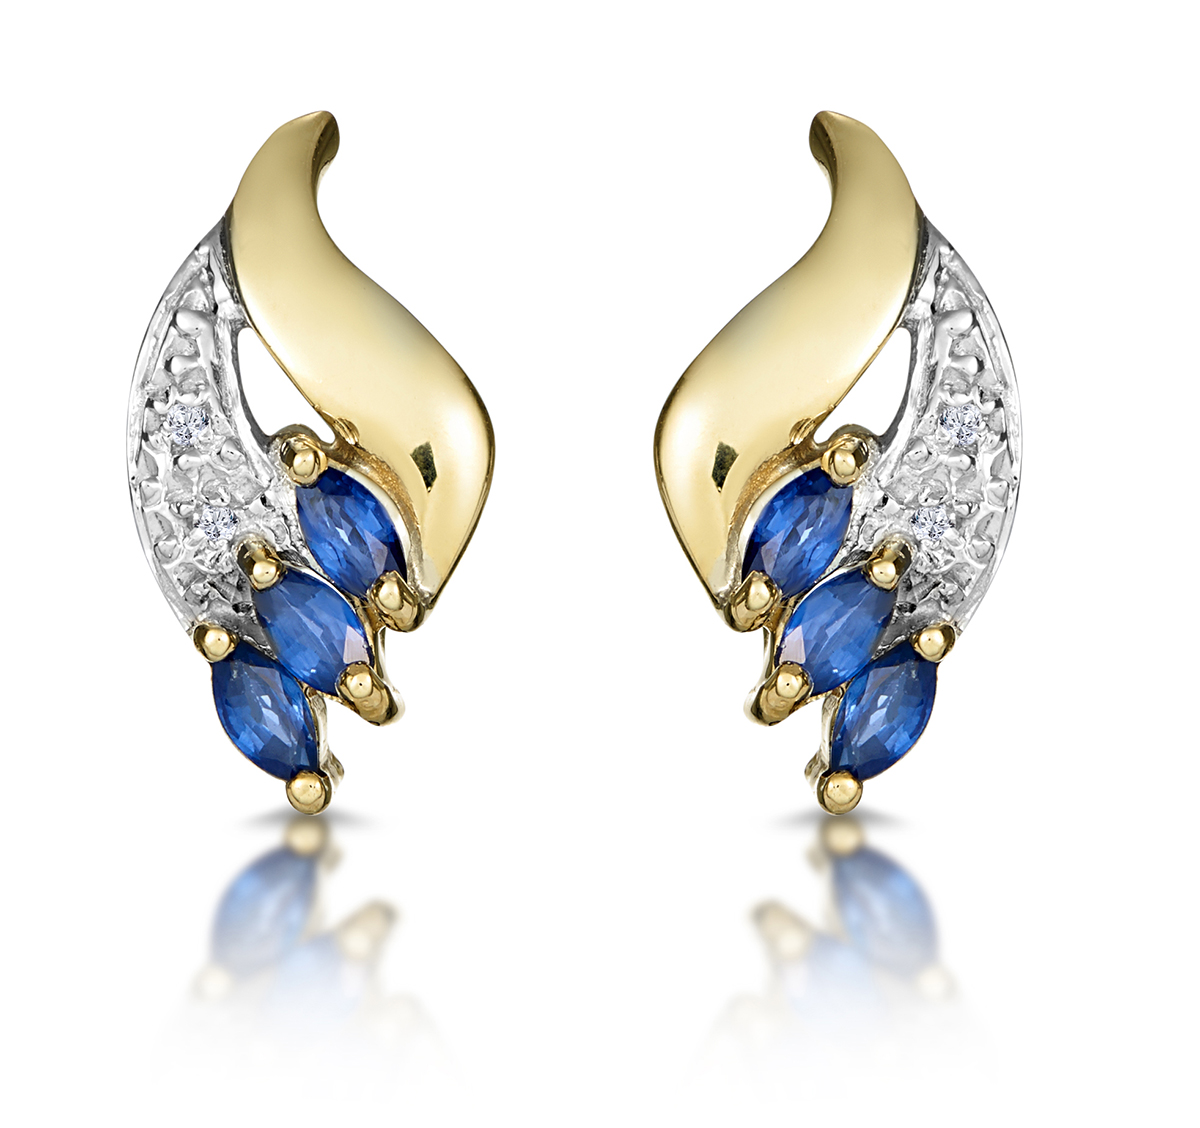 SAPPHIRE 4MM X 2MM AND DIAMOND 9K YELLOW GOLD EARRINGS